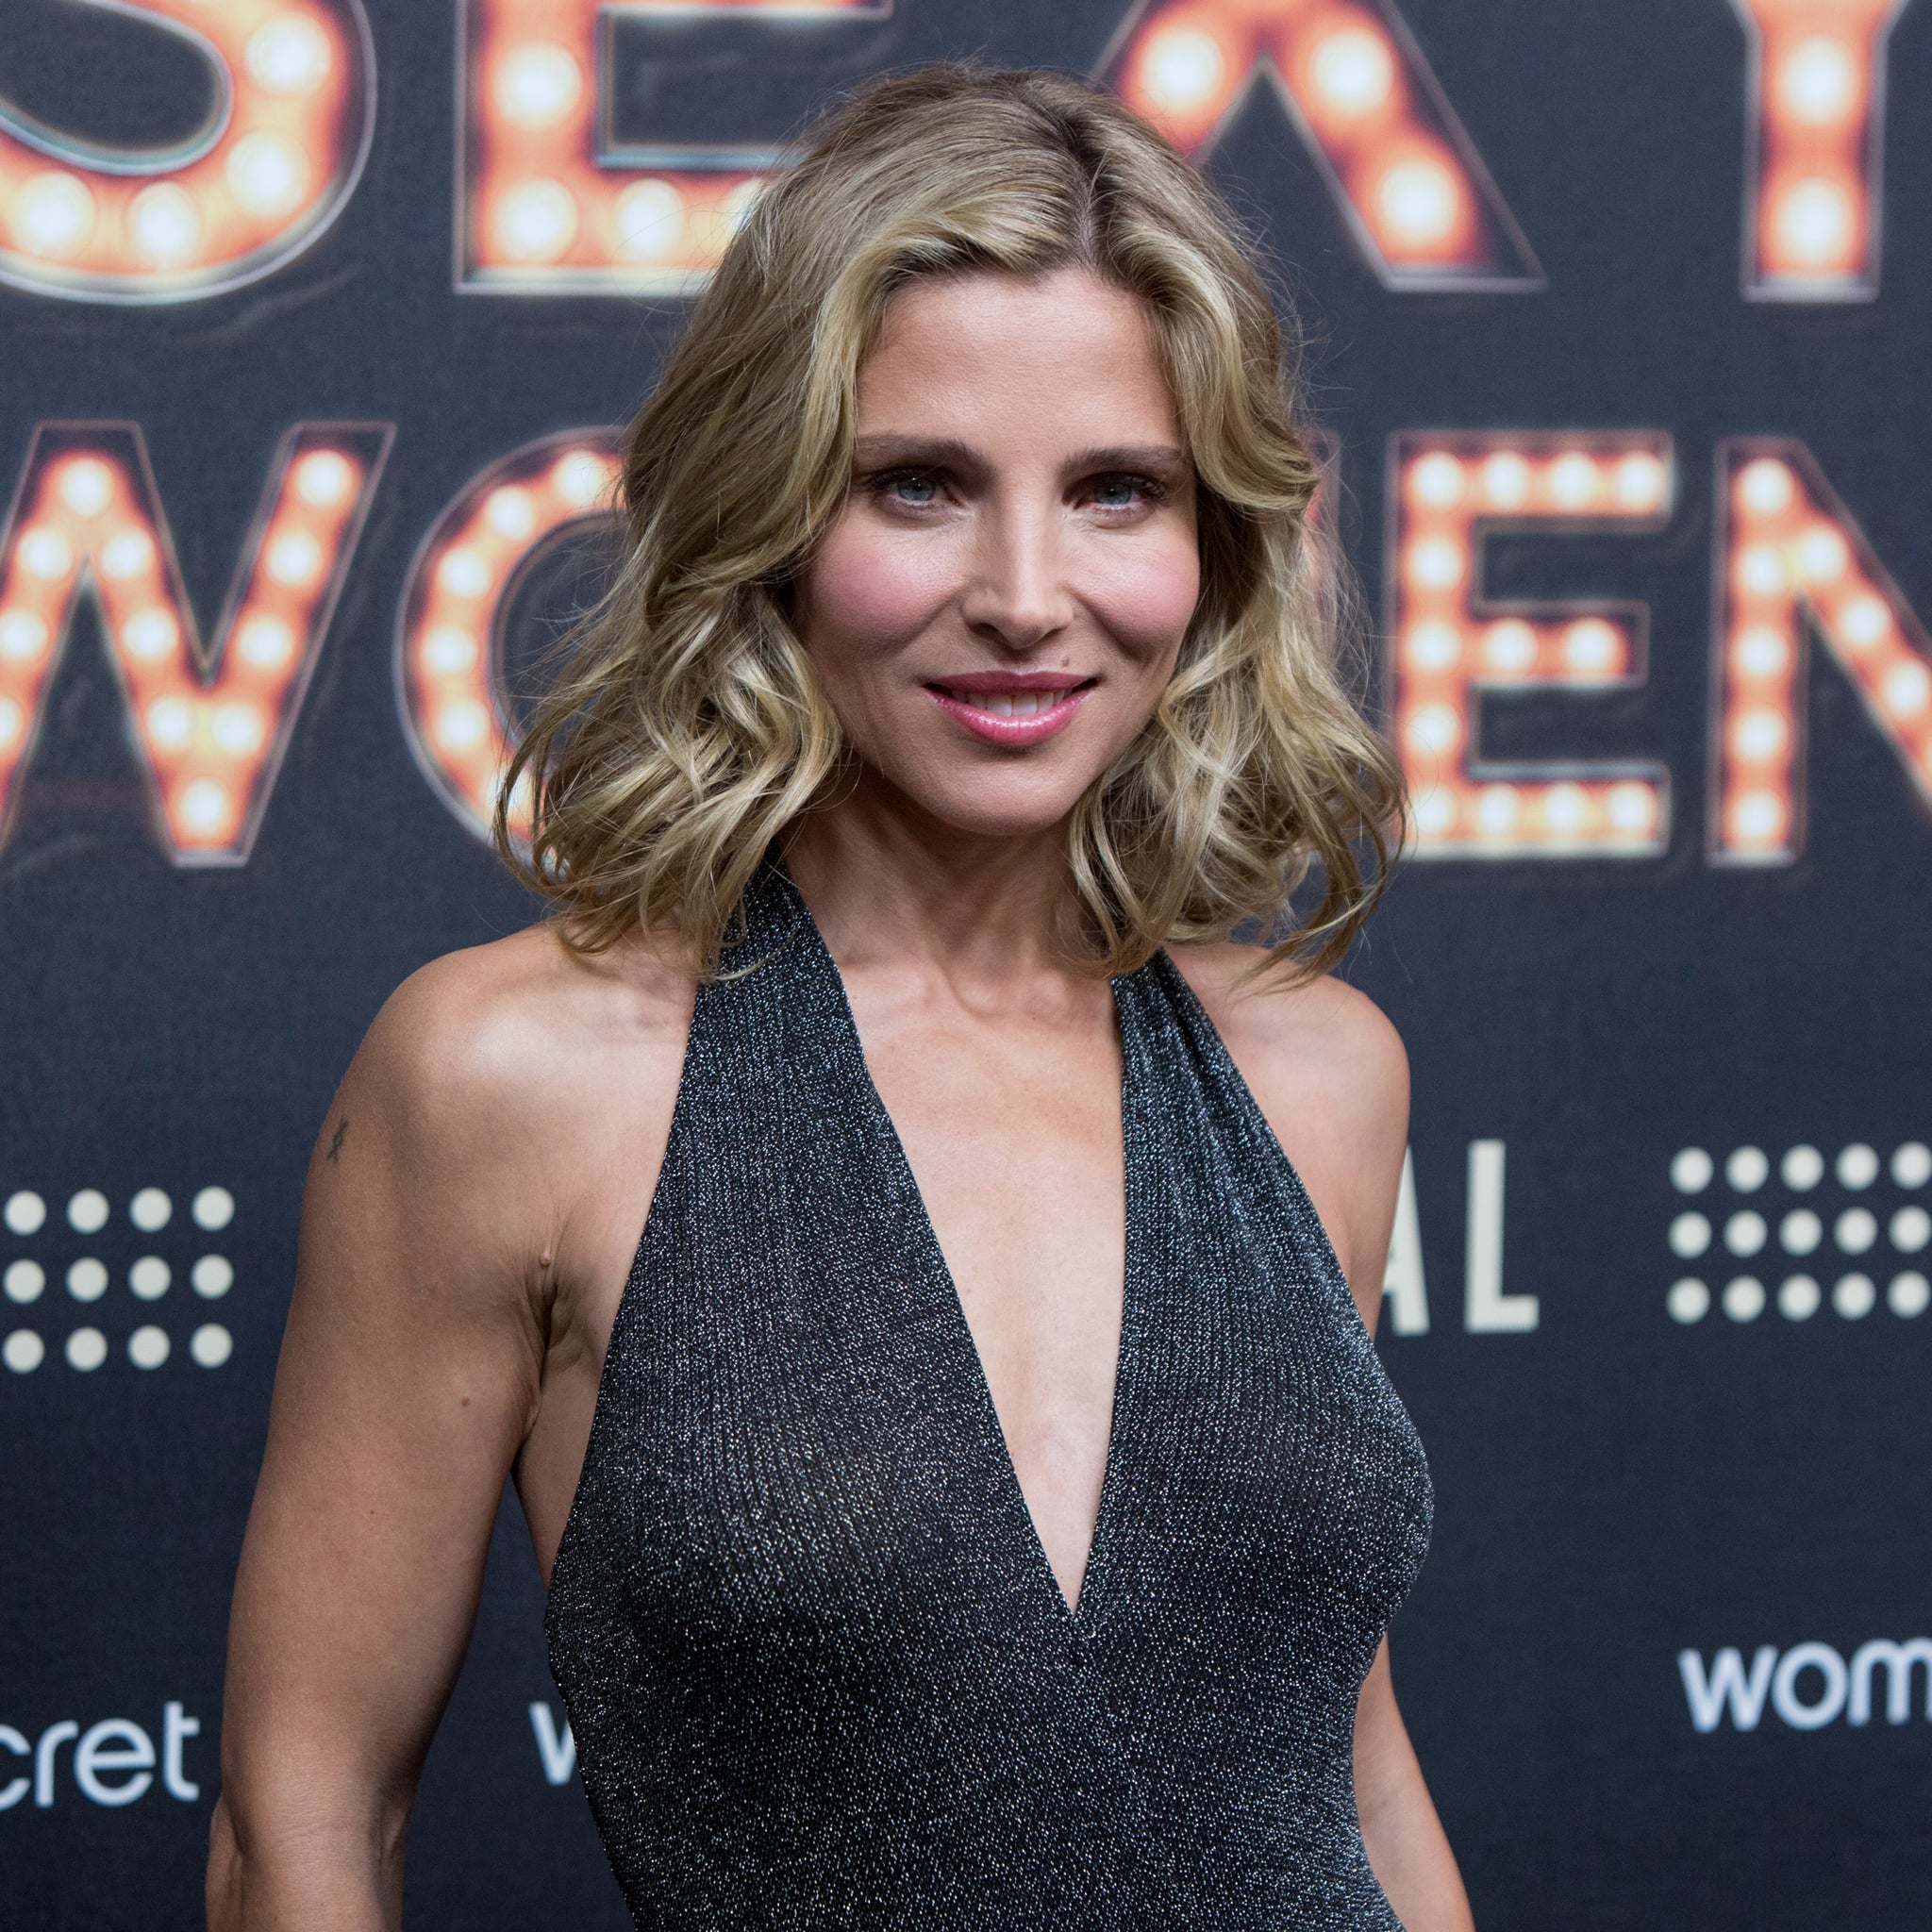 Instagram Elsa Pataky naked (54 photos), Topless, Sideboobs, Boobs, braless 2019